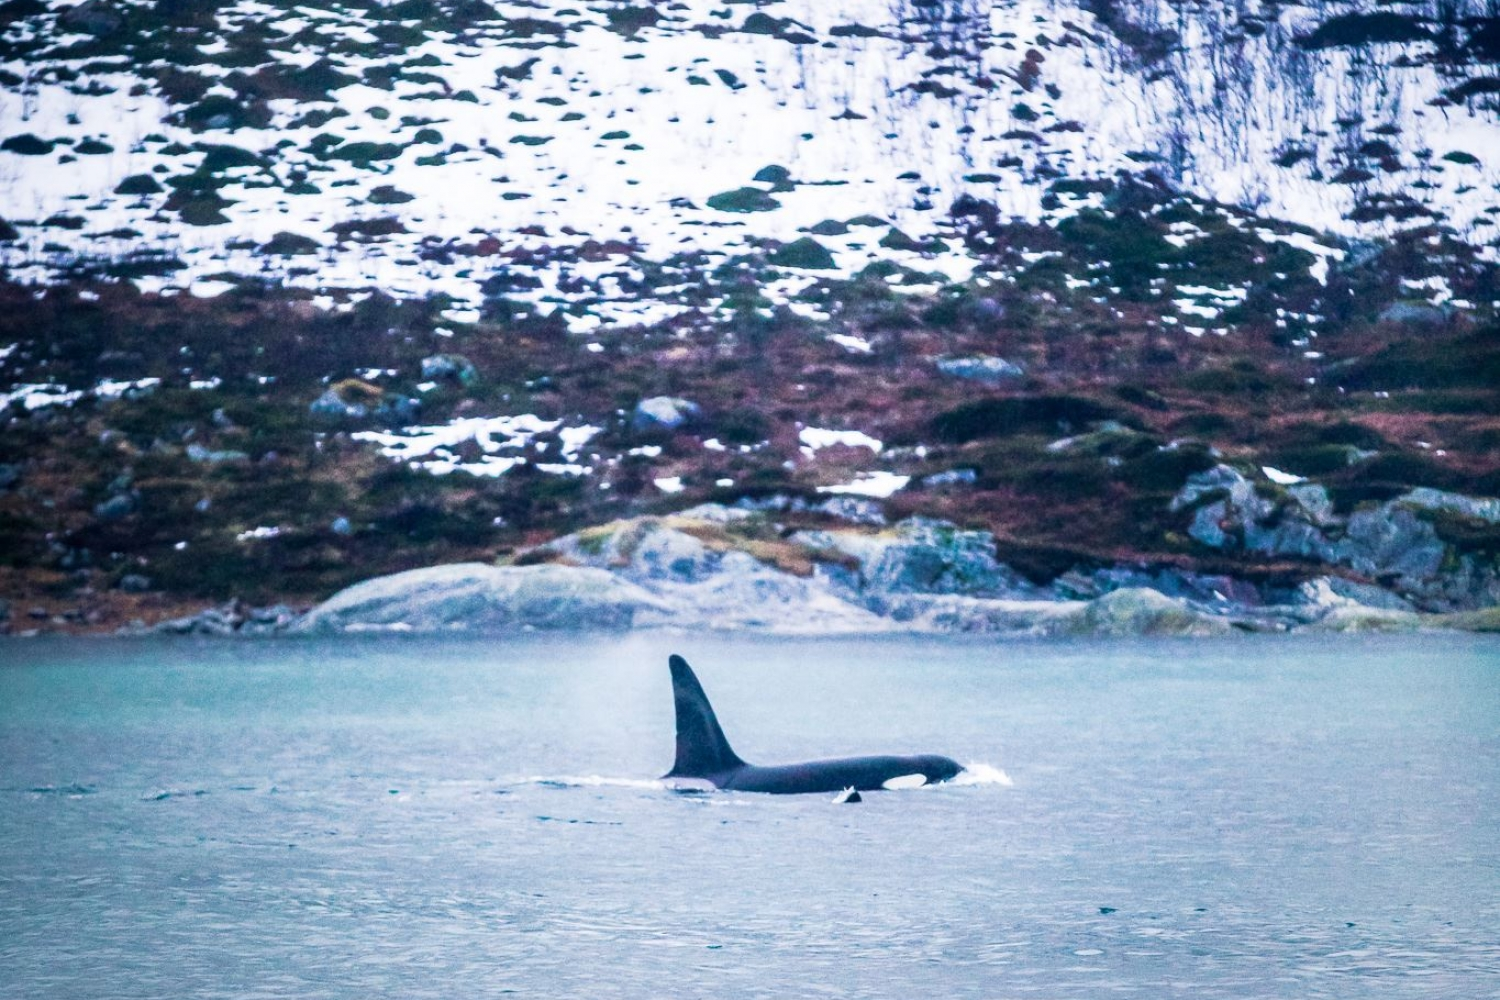 An orca with Arctic landscape in the background